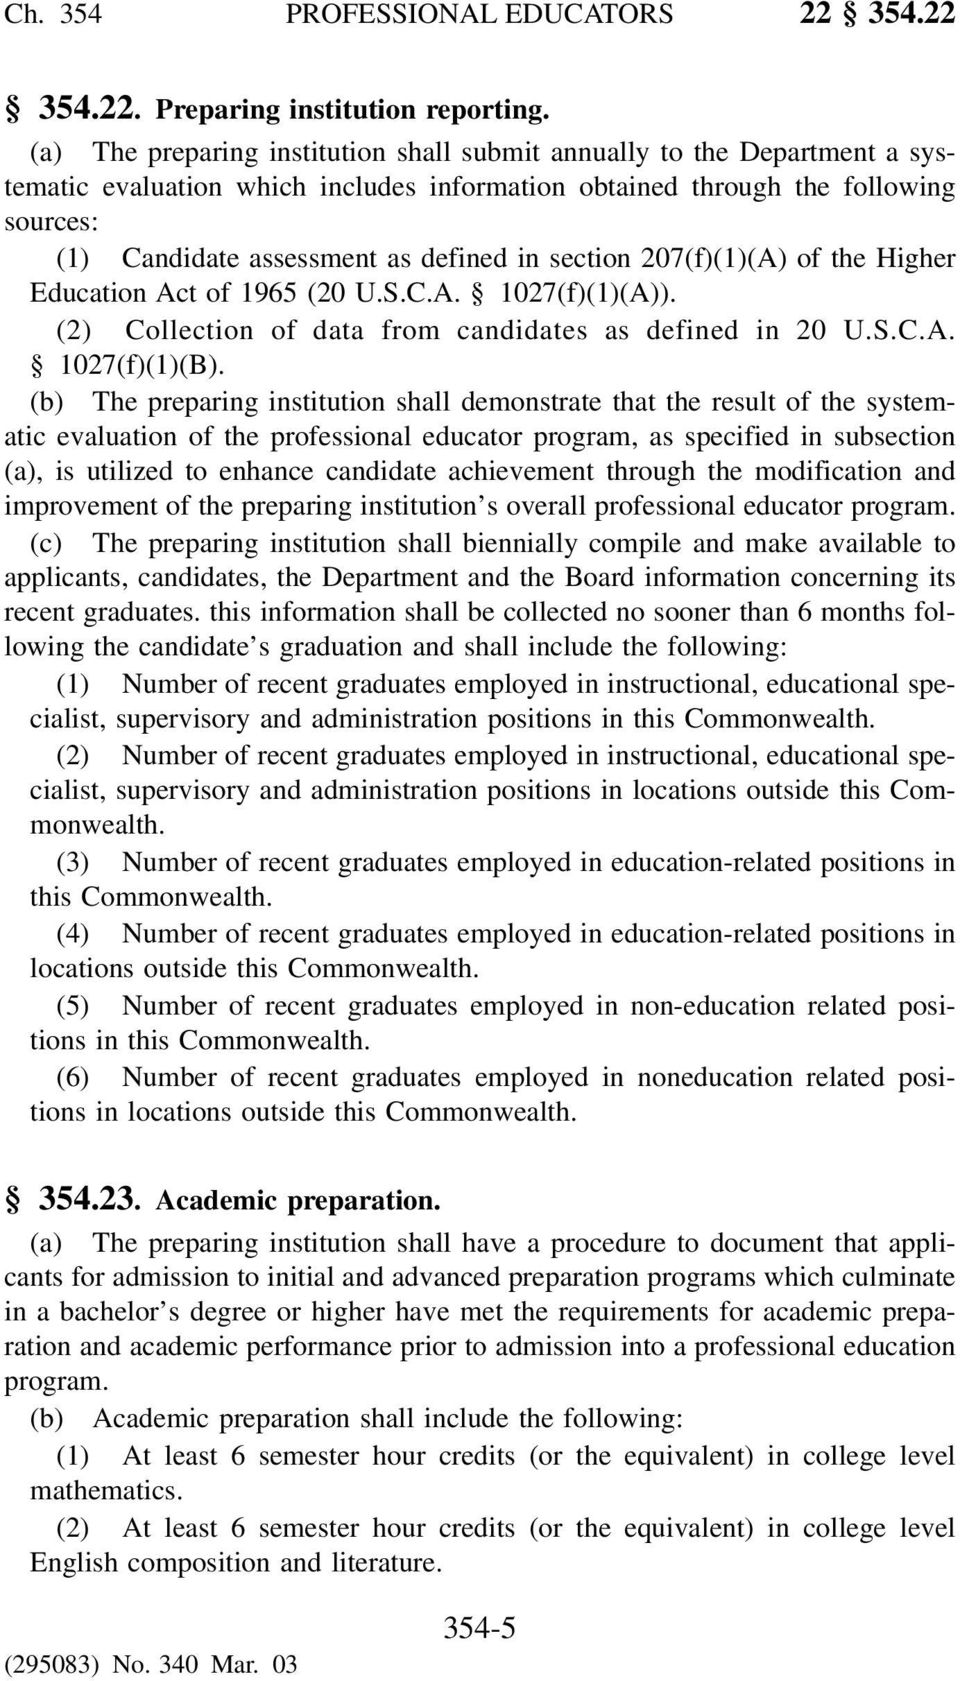 section 207(f)(1)(A) of the Higher Education Act of 1965 (20 U.S.C.A. 1027(f)(1)(A)). (2) Collection of data from candidates as defined in 20 U.S.C.A. 1027(f)(1)(B).